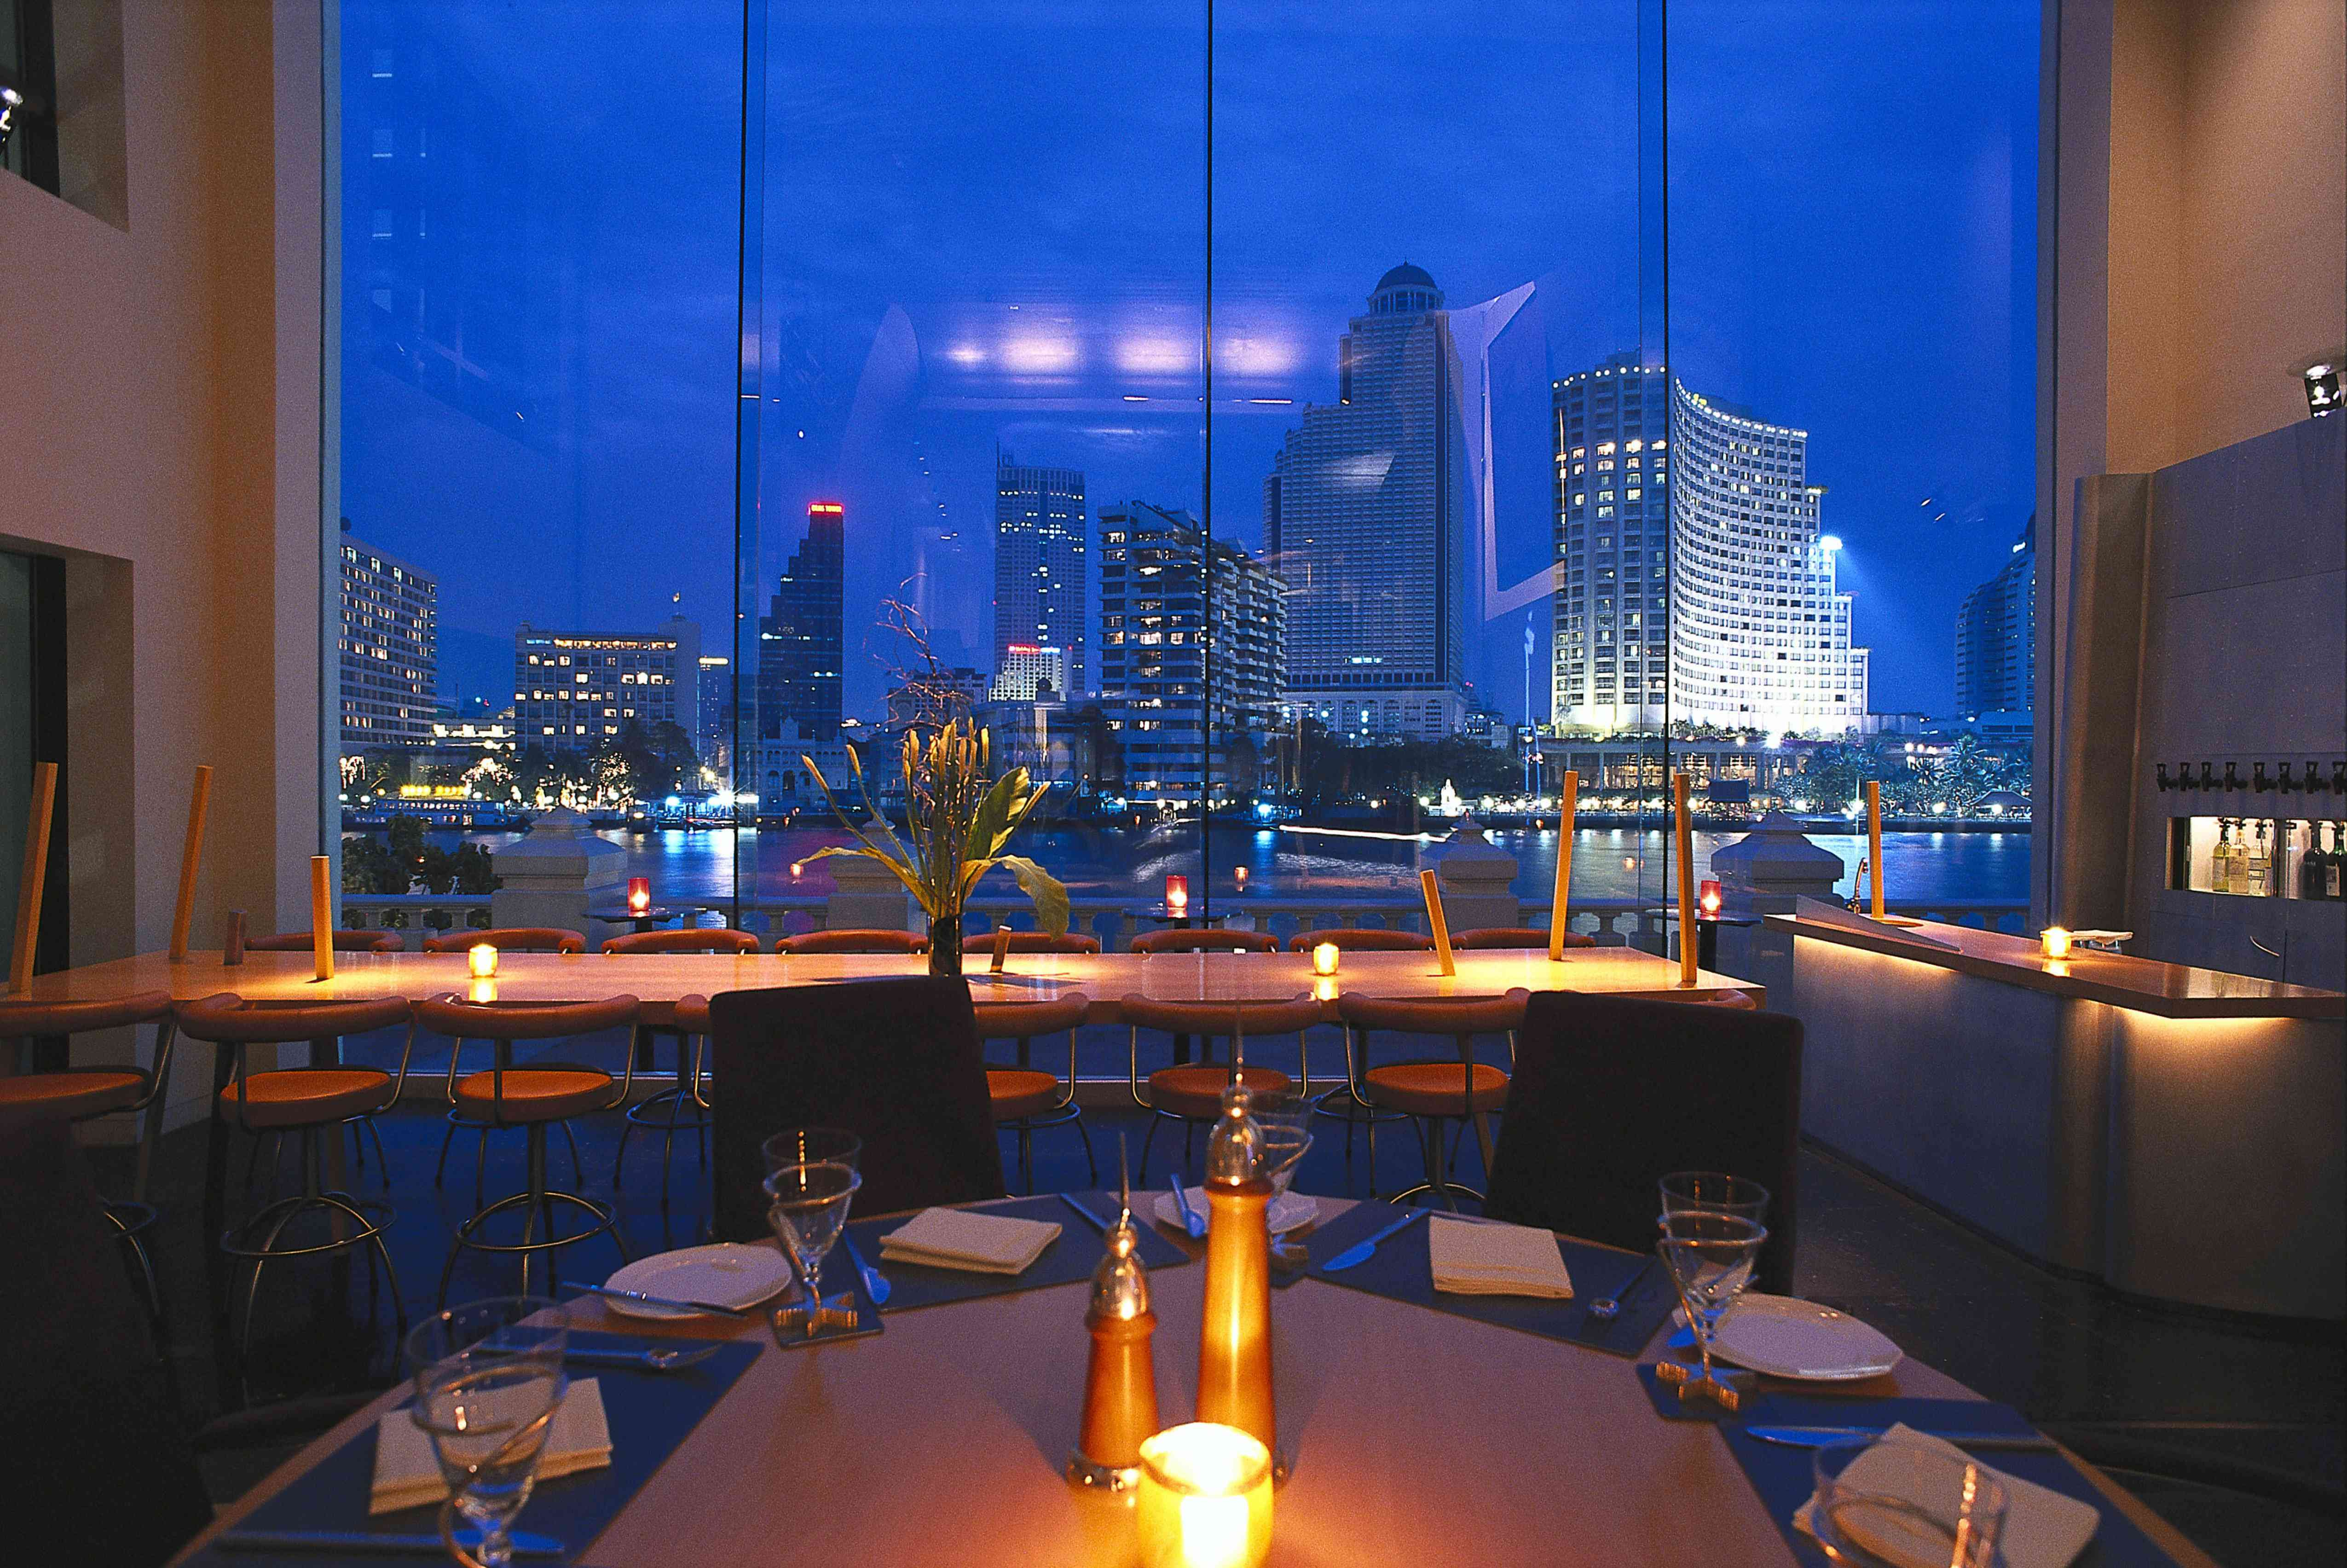 A restaurant in Bangkok with a view